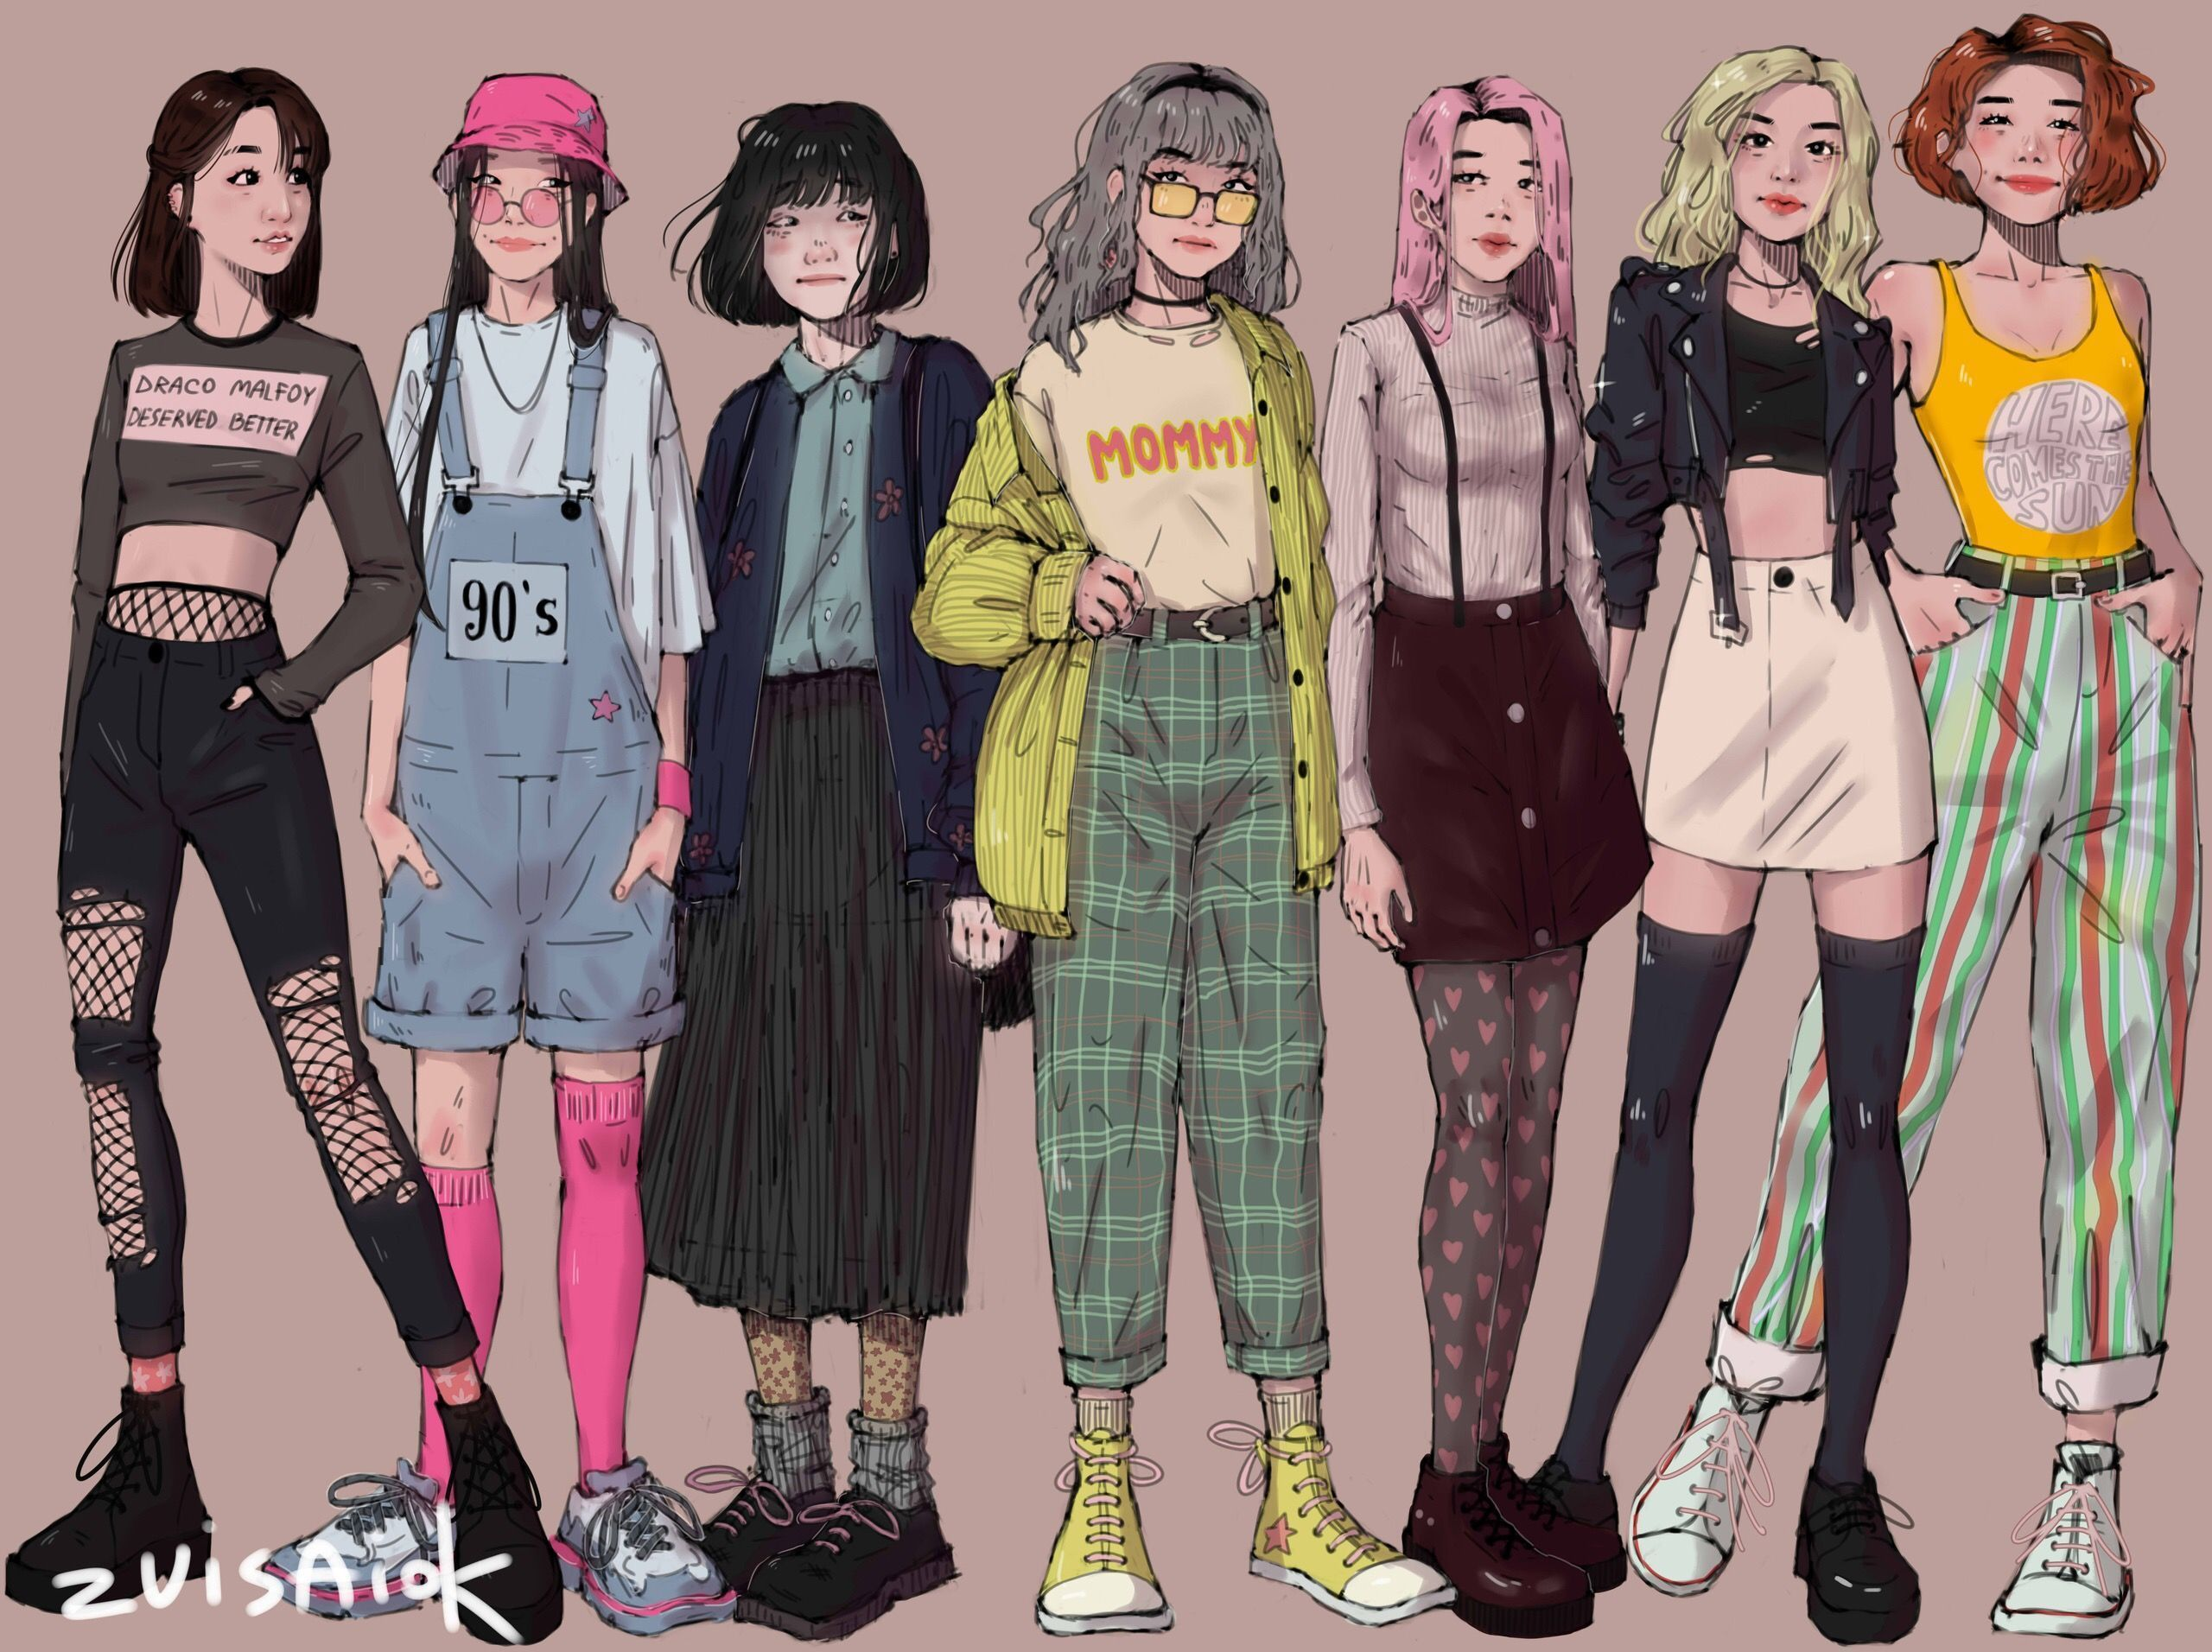 Pin by Anotherqwq on meee in 2020 | Fashion design drawings